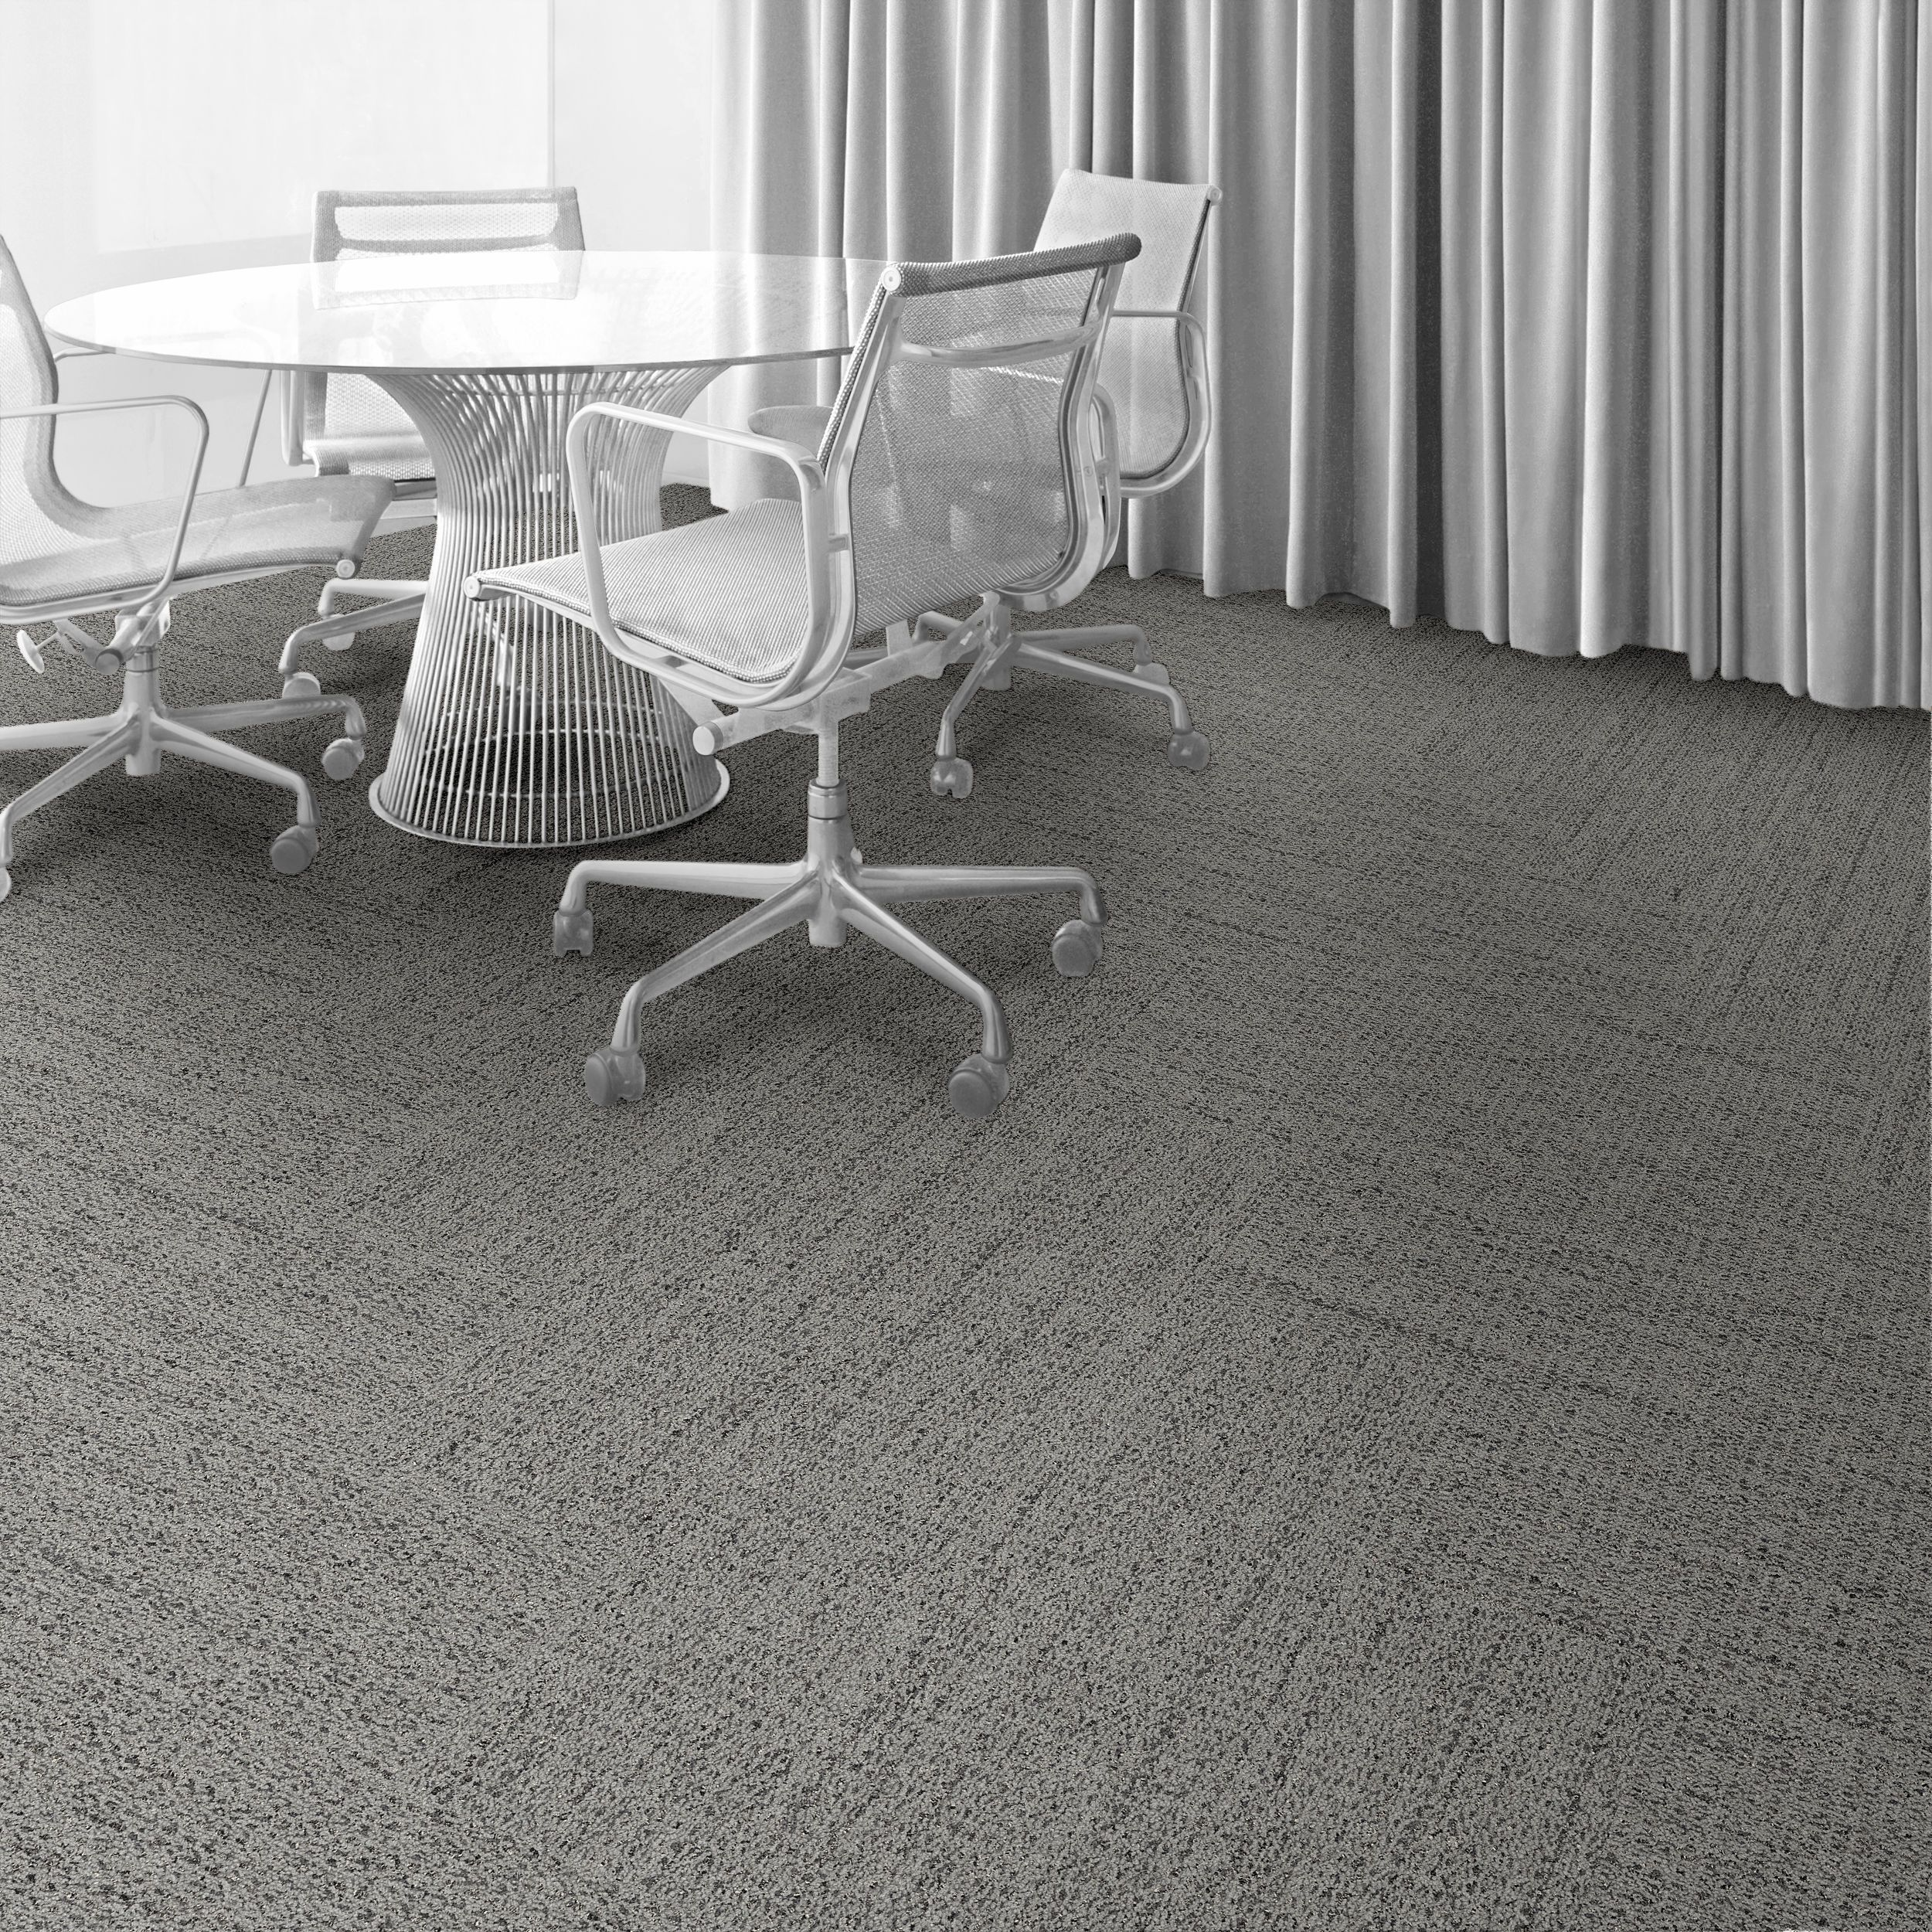 Interface carpet tile: WW870 Color: Natural Weft 105348 Installation method: Herringbone                Room scene: Private Office